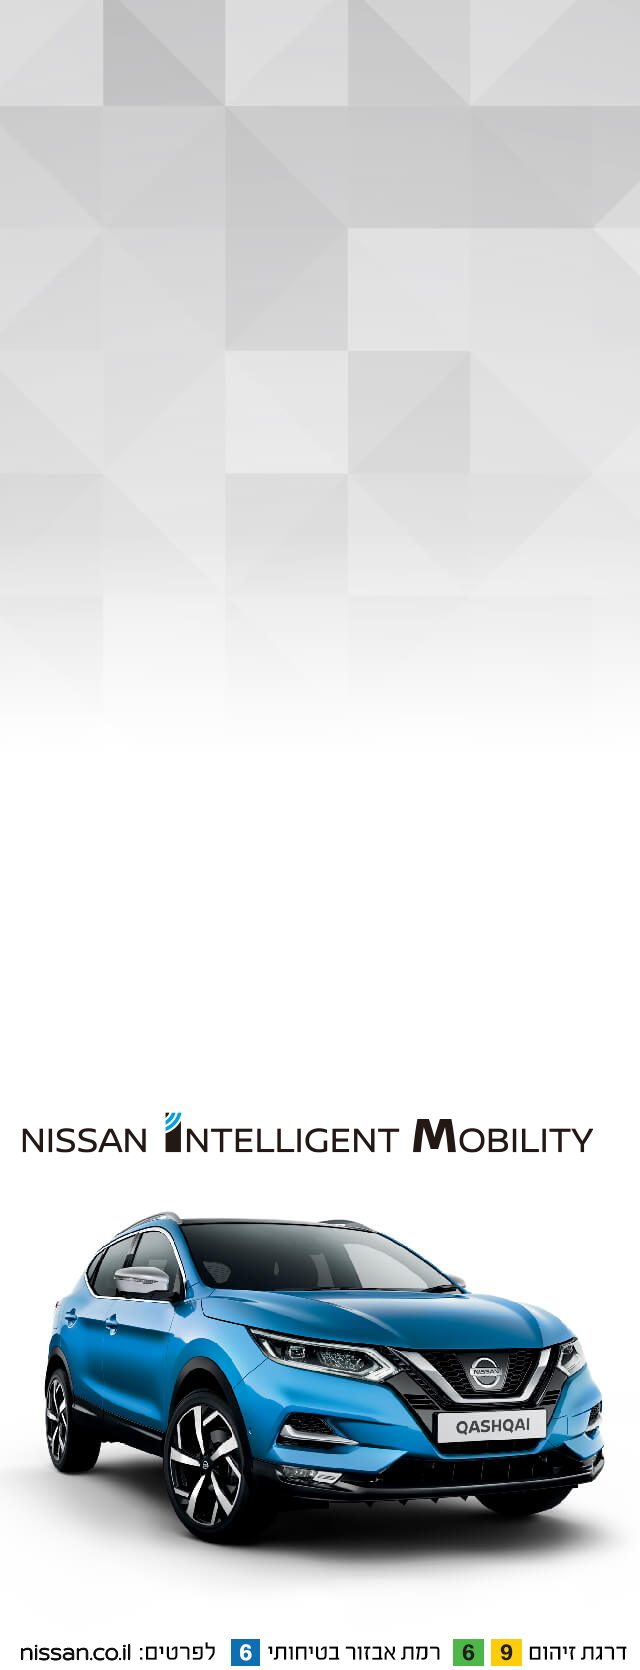 Nissan New Qashqai with Intelligent Mobility